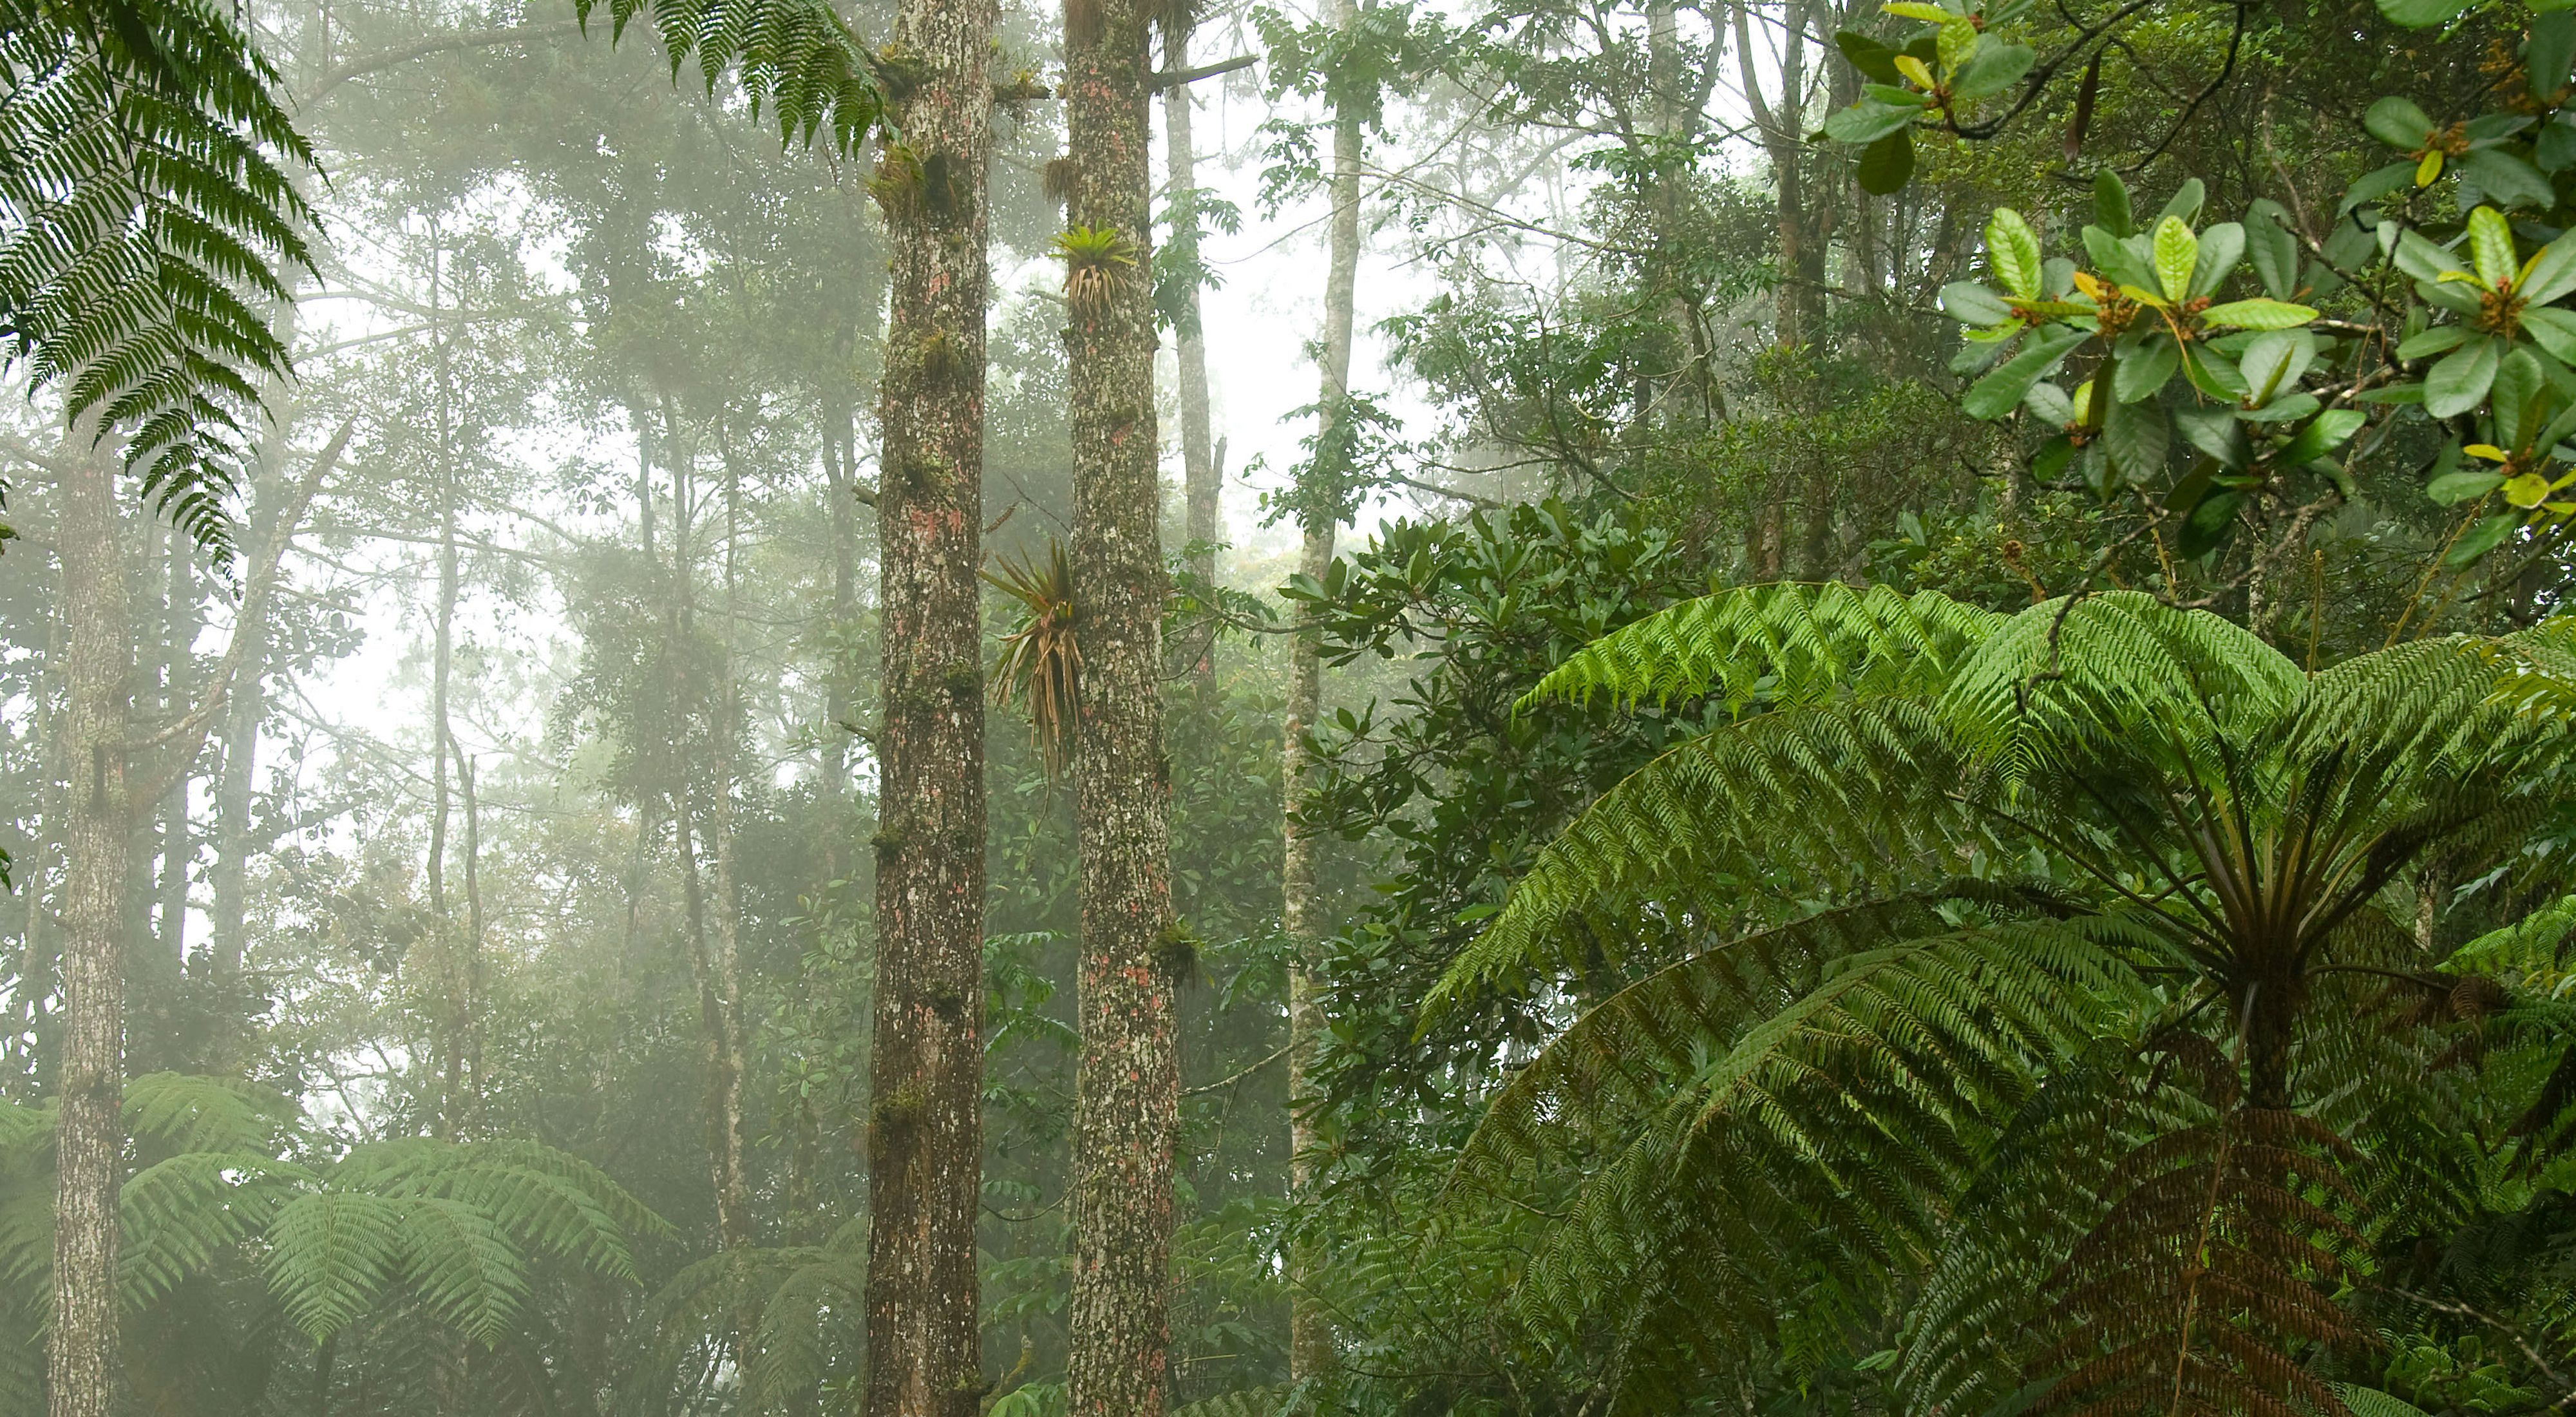 Tree ferns and bromeliads decorate the cloud forest in the Sacj  Private Reserve in central Guatemala. The Conservancy works with the Private Natural Reserve Association to strengthen management and information sharing in the conservation network to which Sacj  belongs.